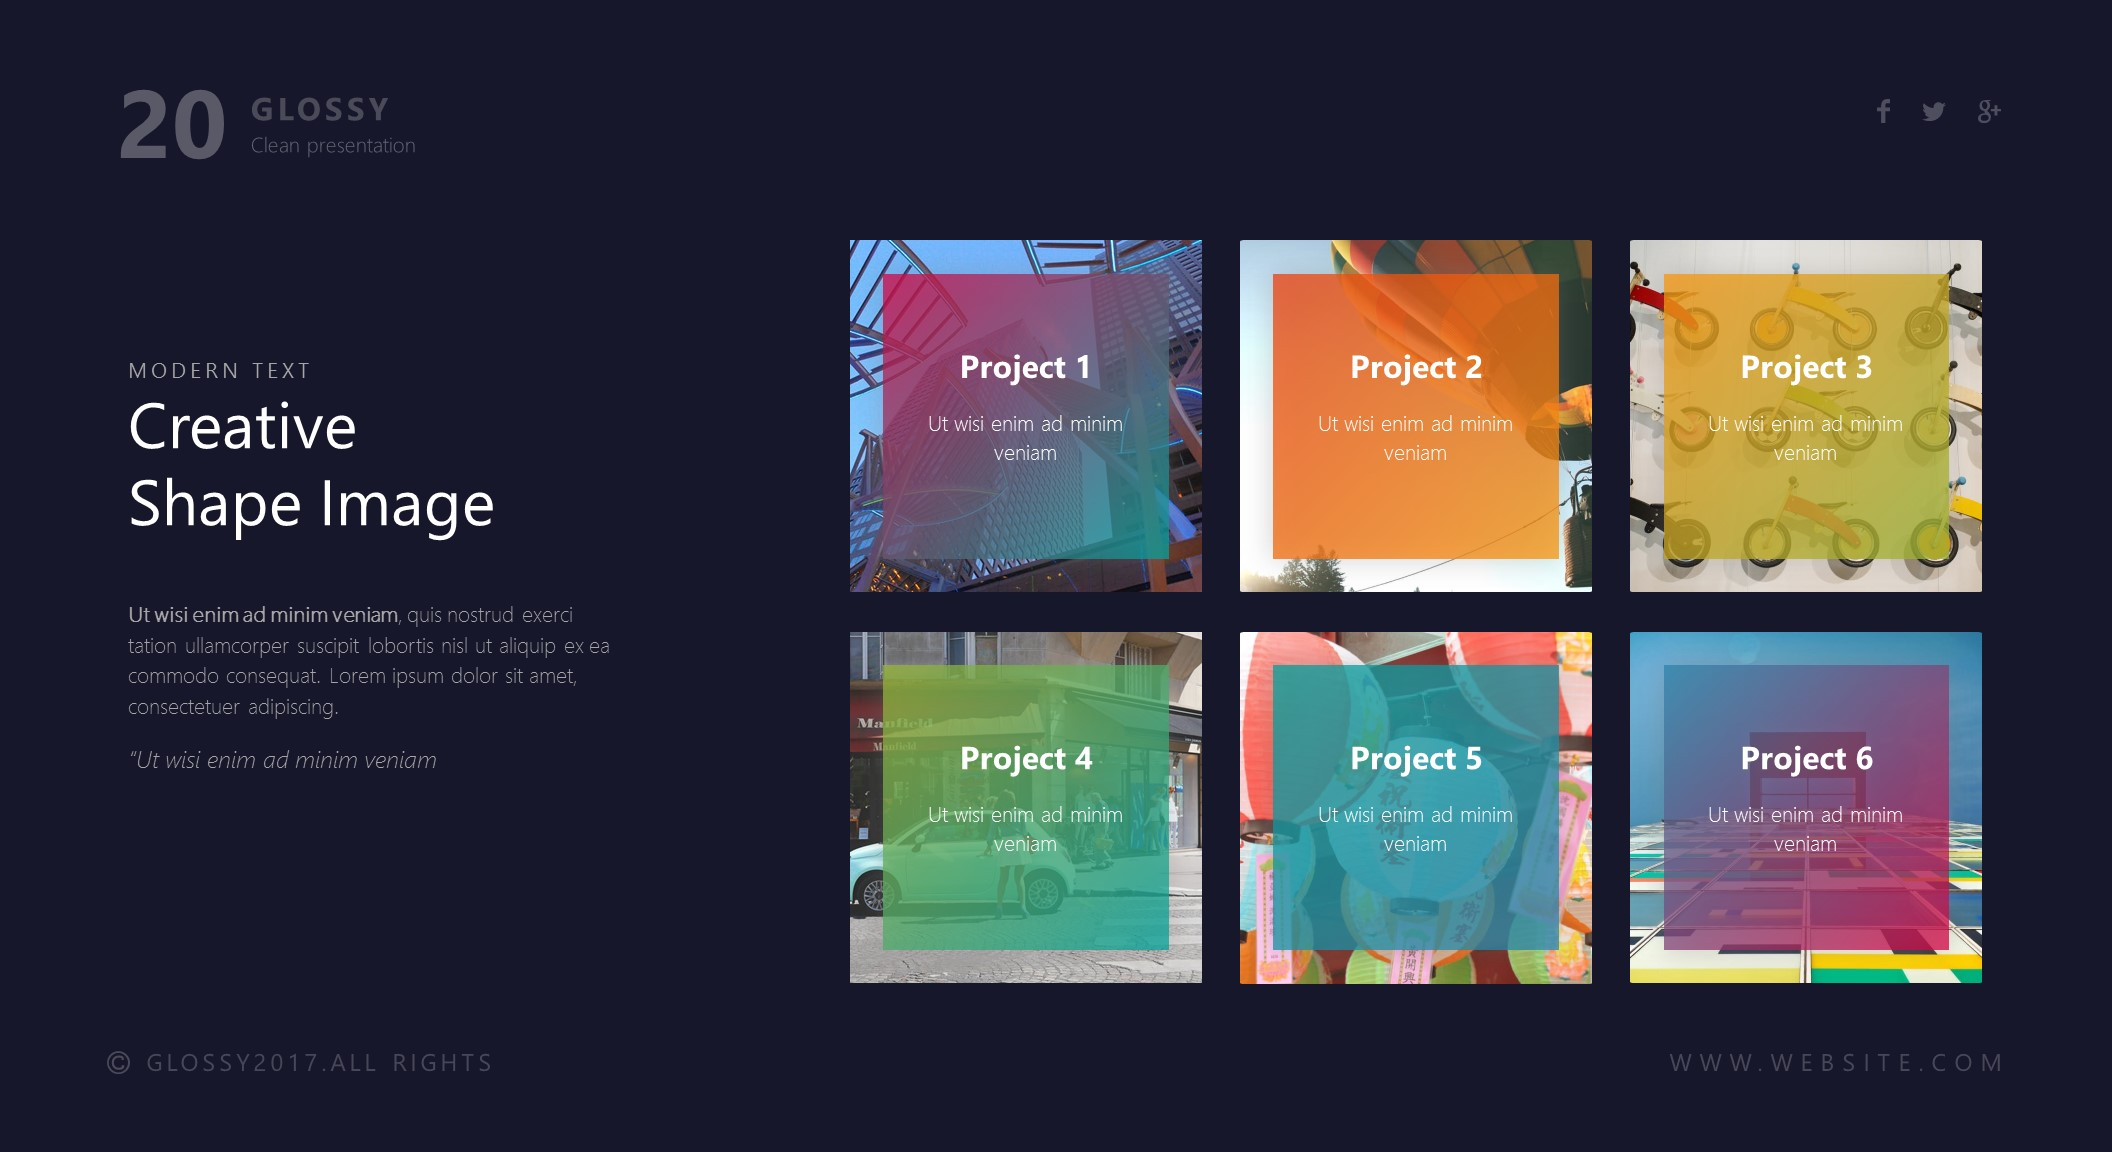 Glossy powerpoint template by brandearth graphicriver jpg preview image setslide20 copy toneelgroepblik Image collections